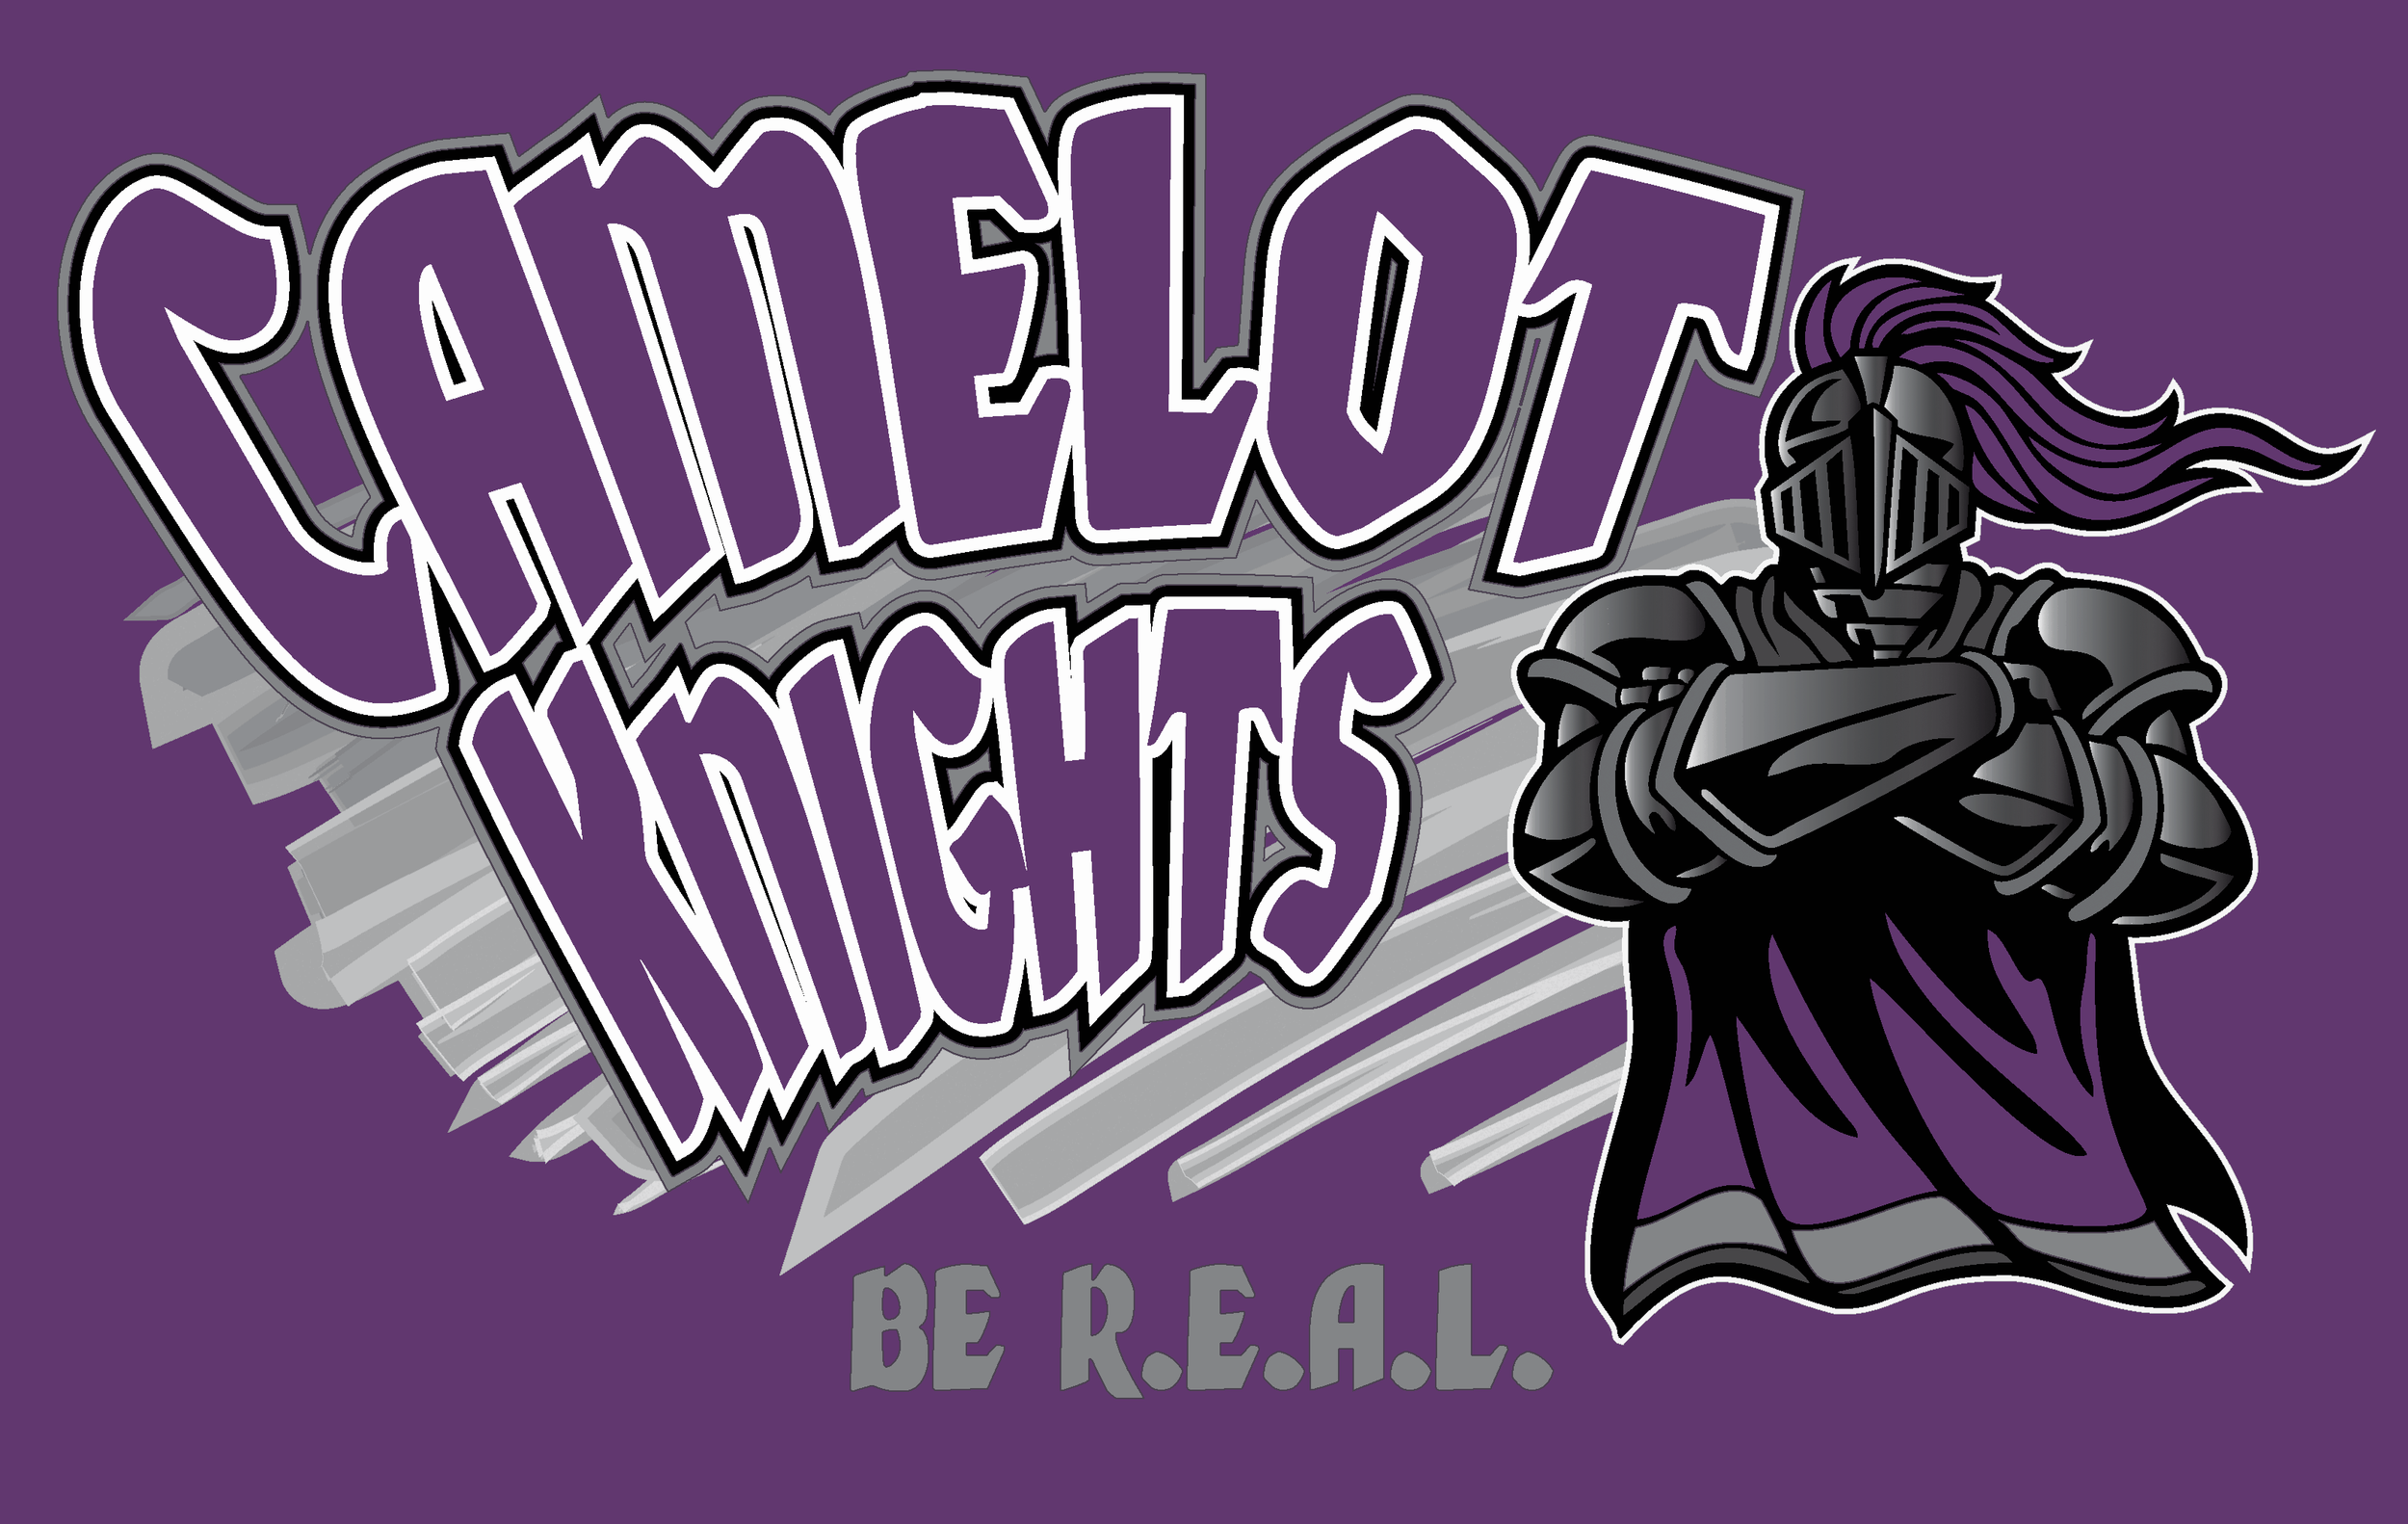 CamelotSchool_2016-10_CamelotKnightsREAL_CHEST-SEPS-OnPurple.png